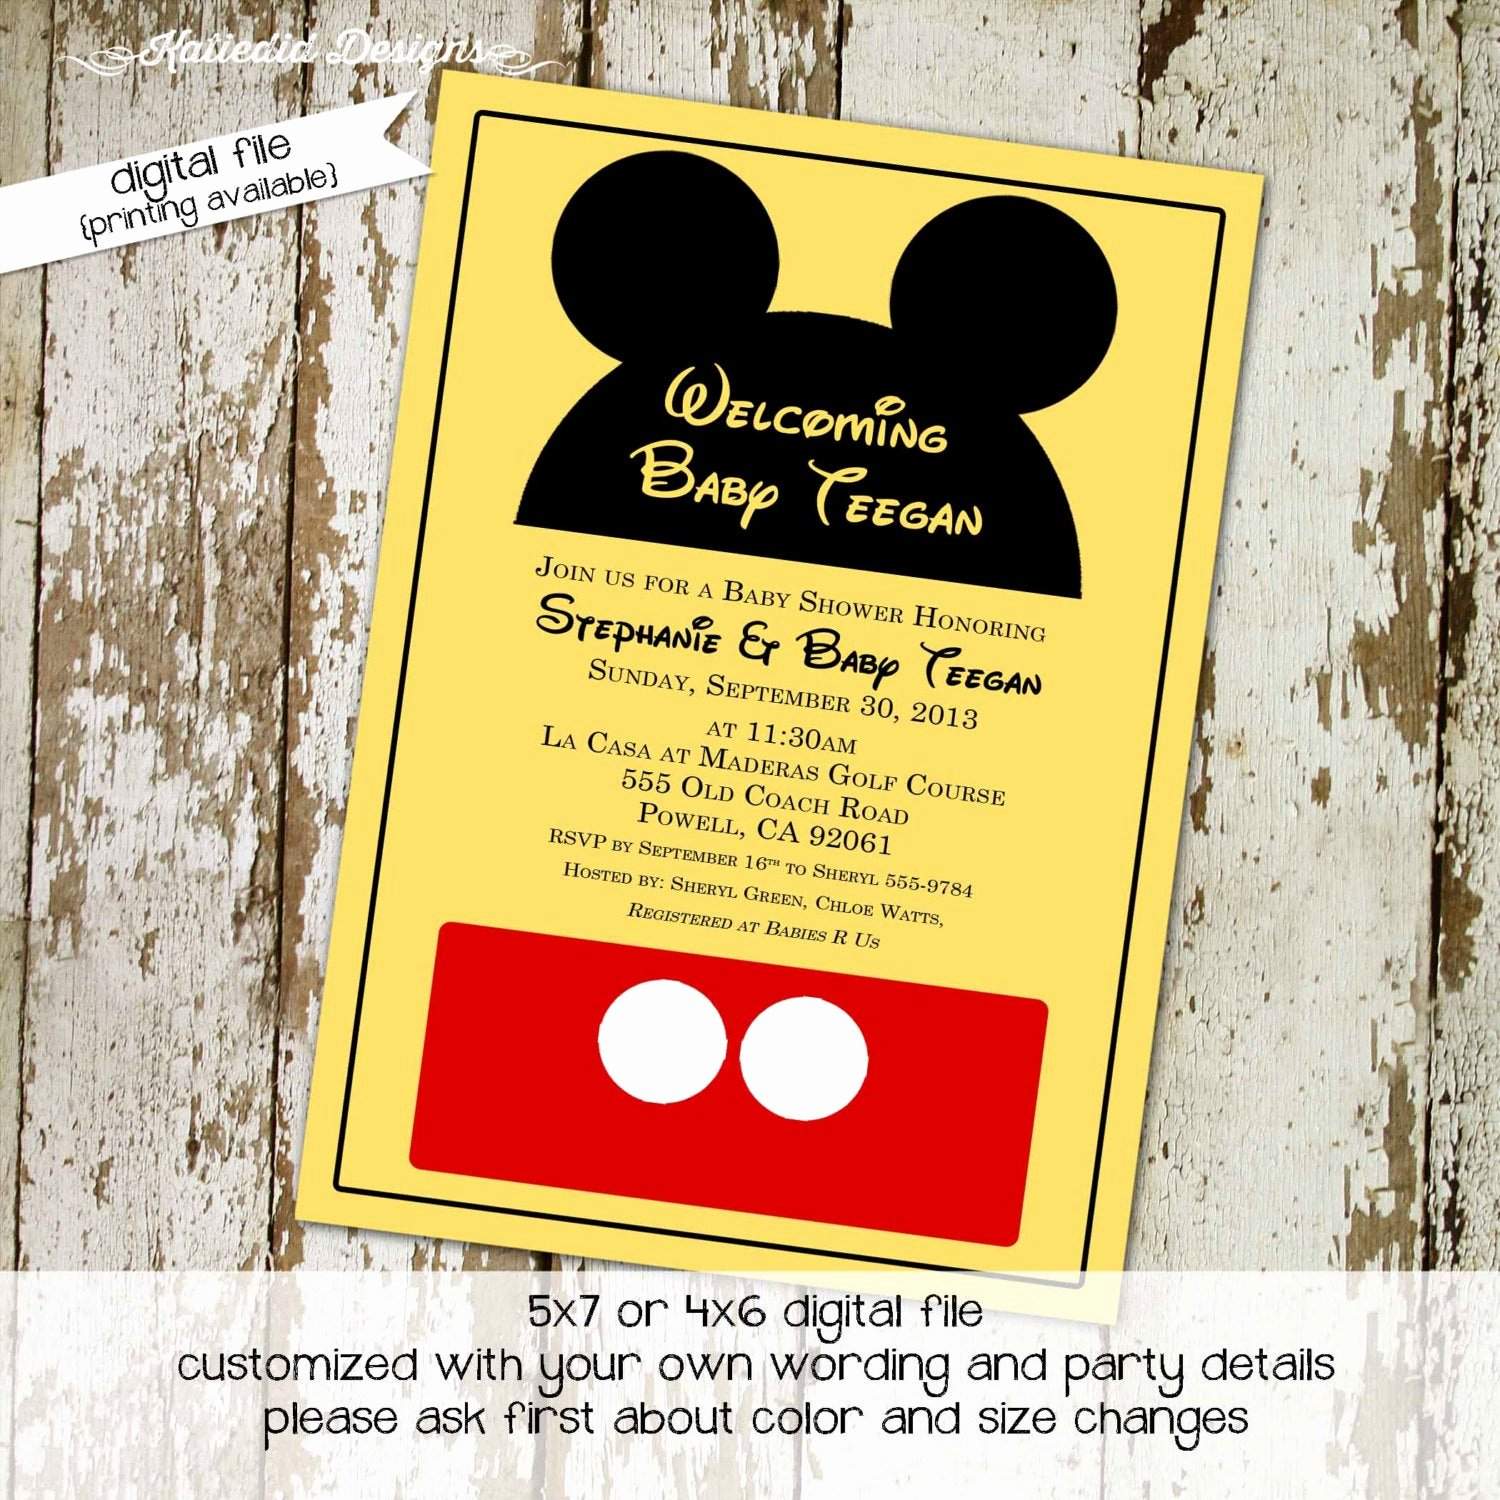 Disney Baby Shower Invitations New Disney Baby Shower Invitation Mickey Mouse Birthday Invitation